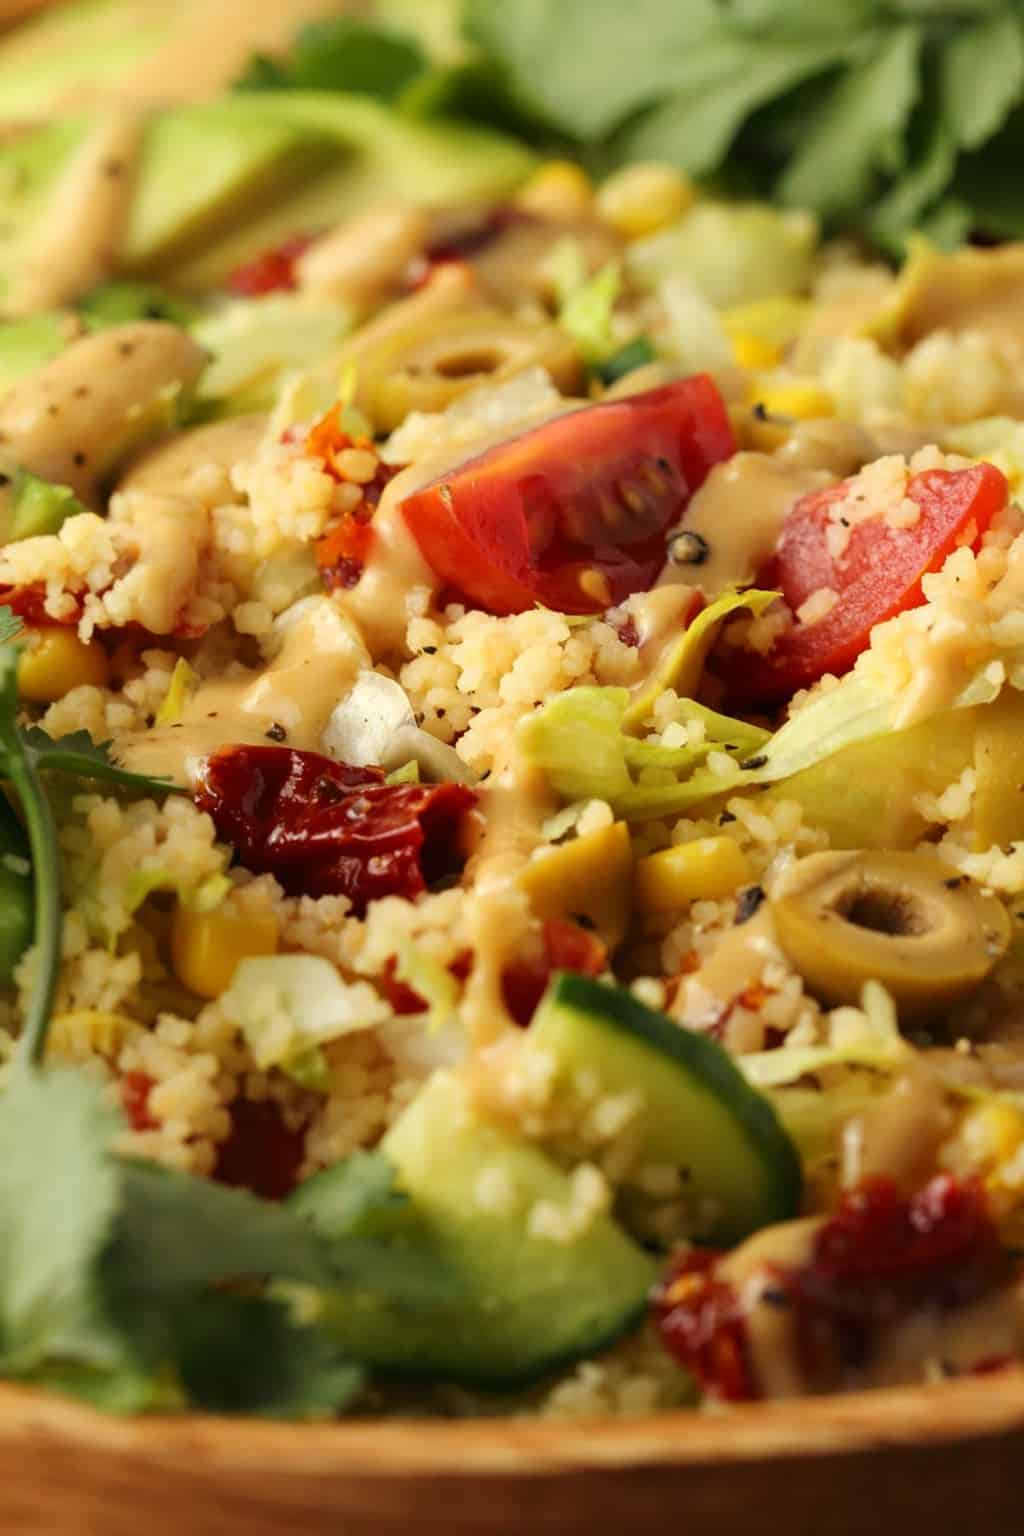 Vegan couscous salad topped with tahini dressing.